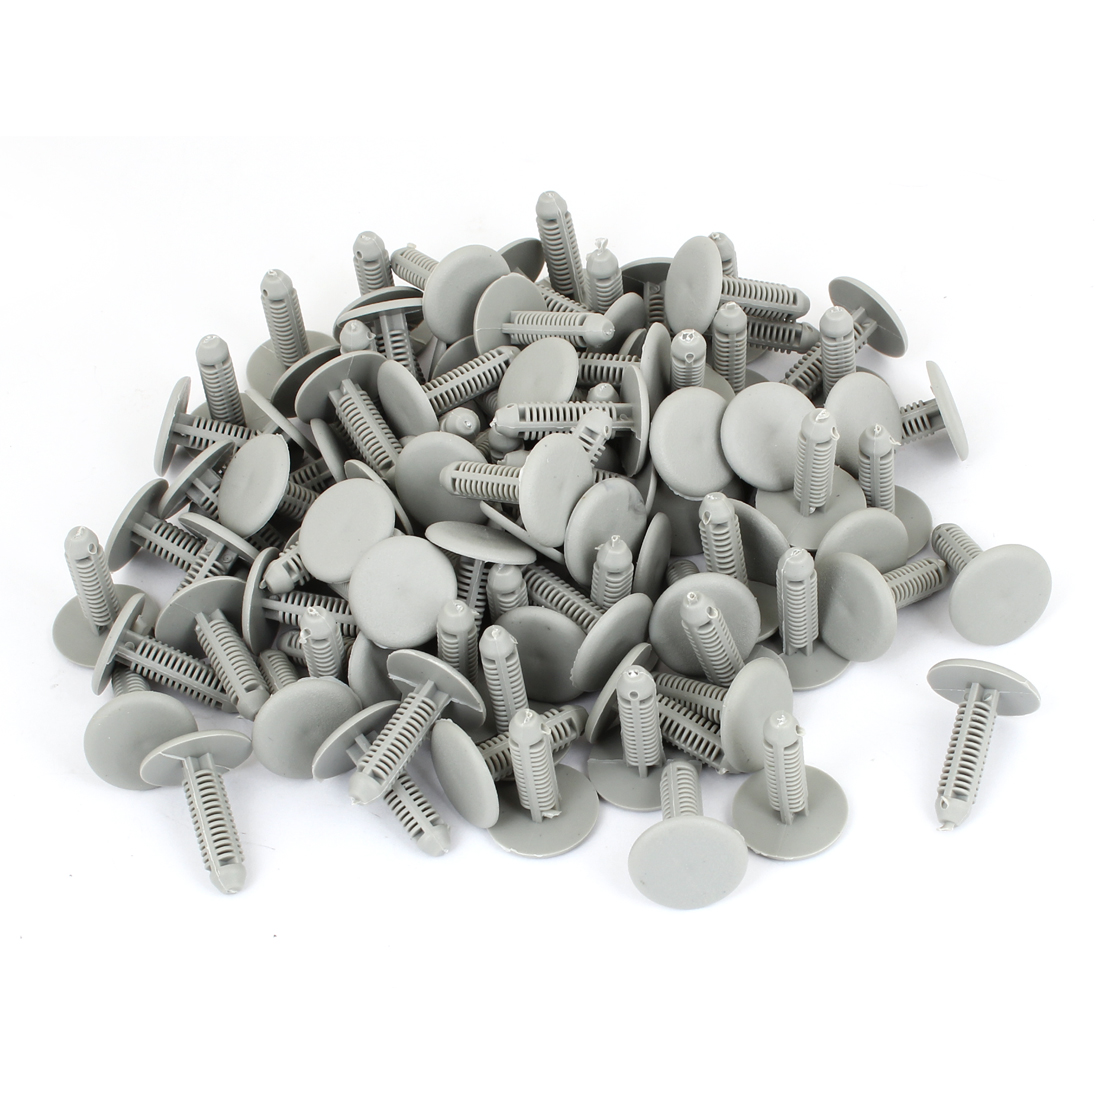 100 Pcs Vehicle 6mm Hole Gray Door Plastic Replacement Rivets Fastener